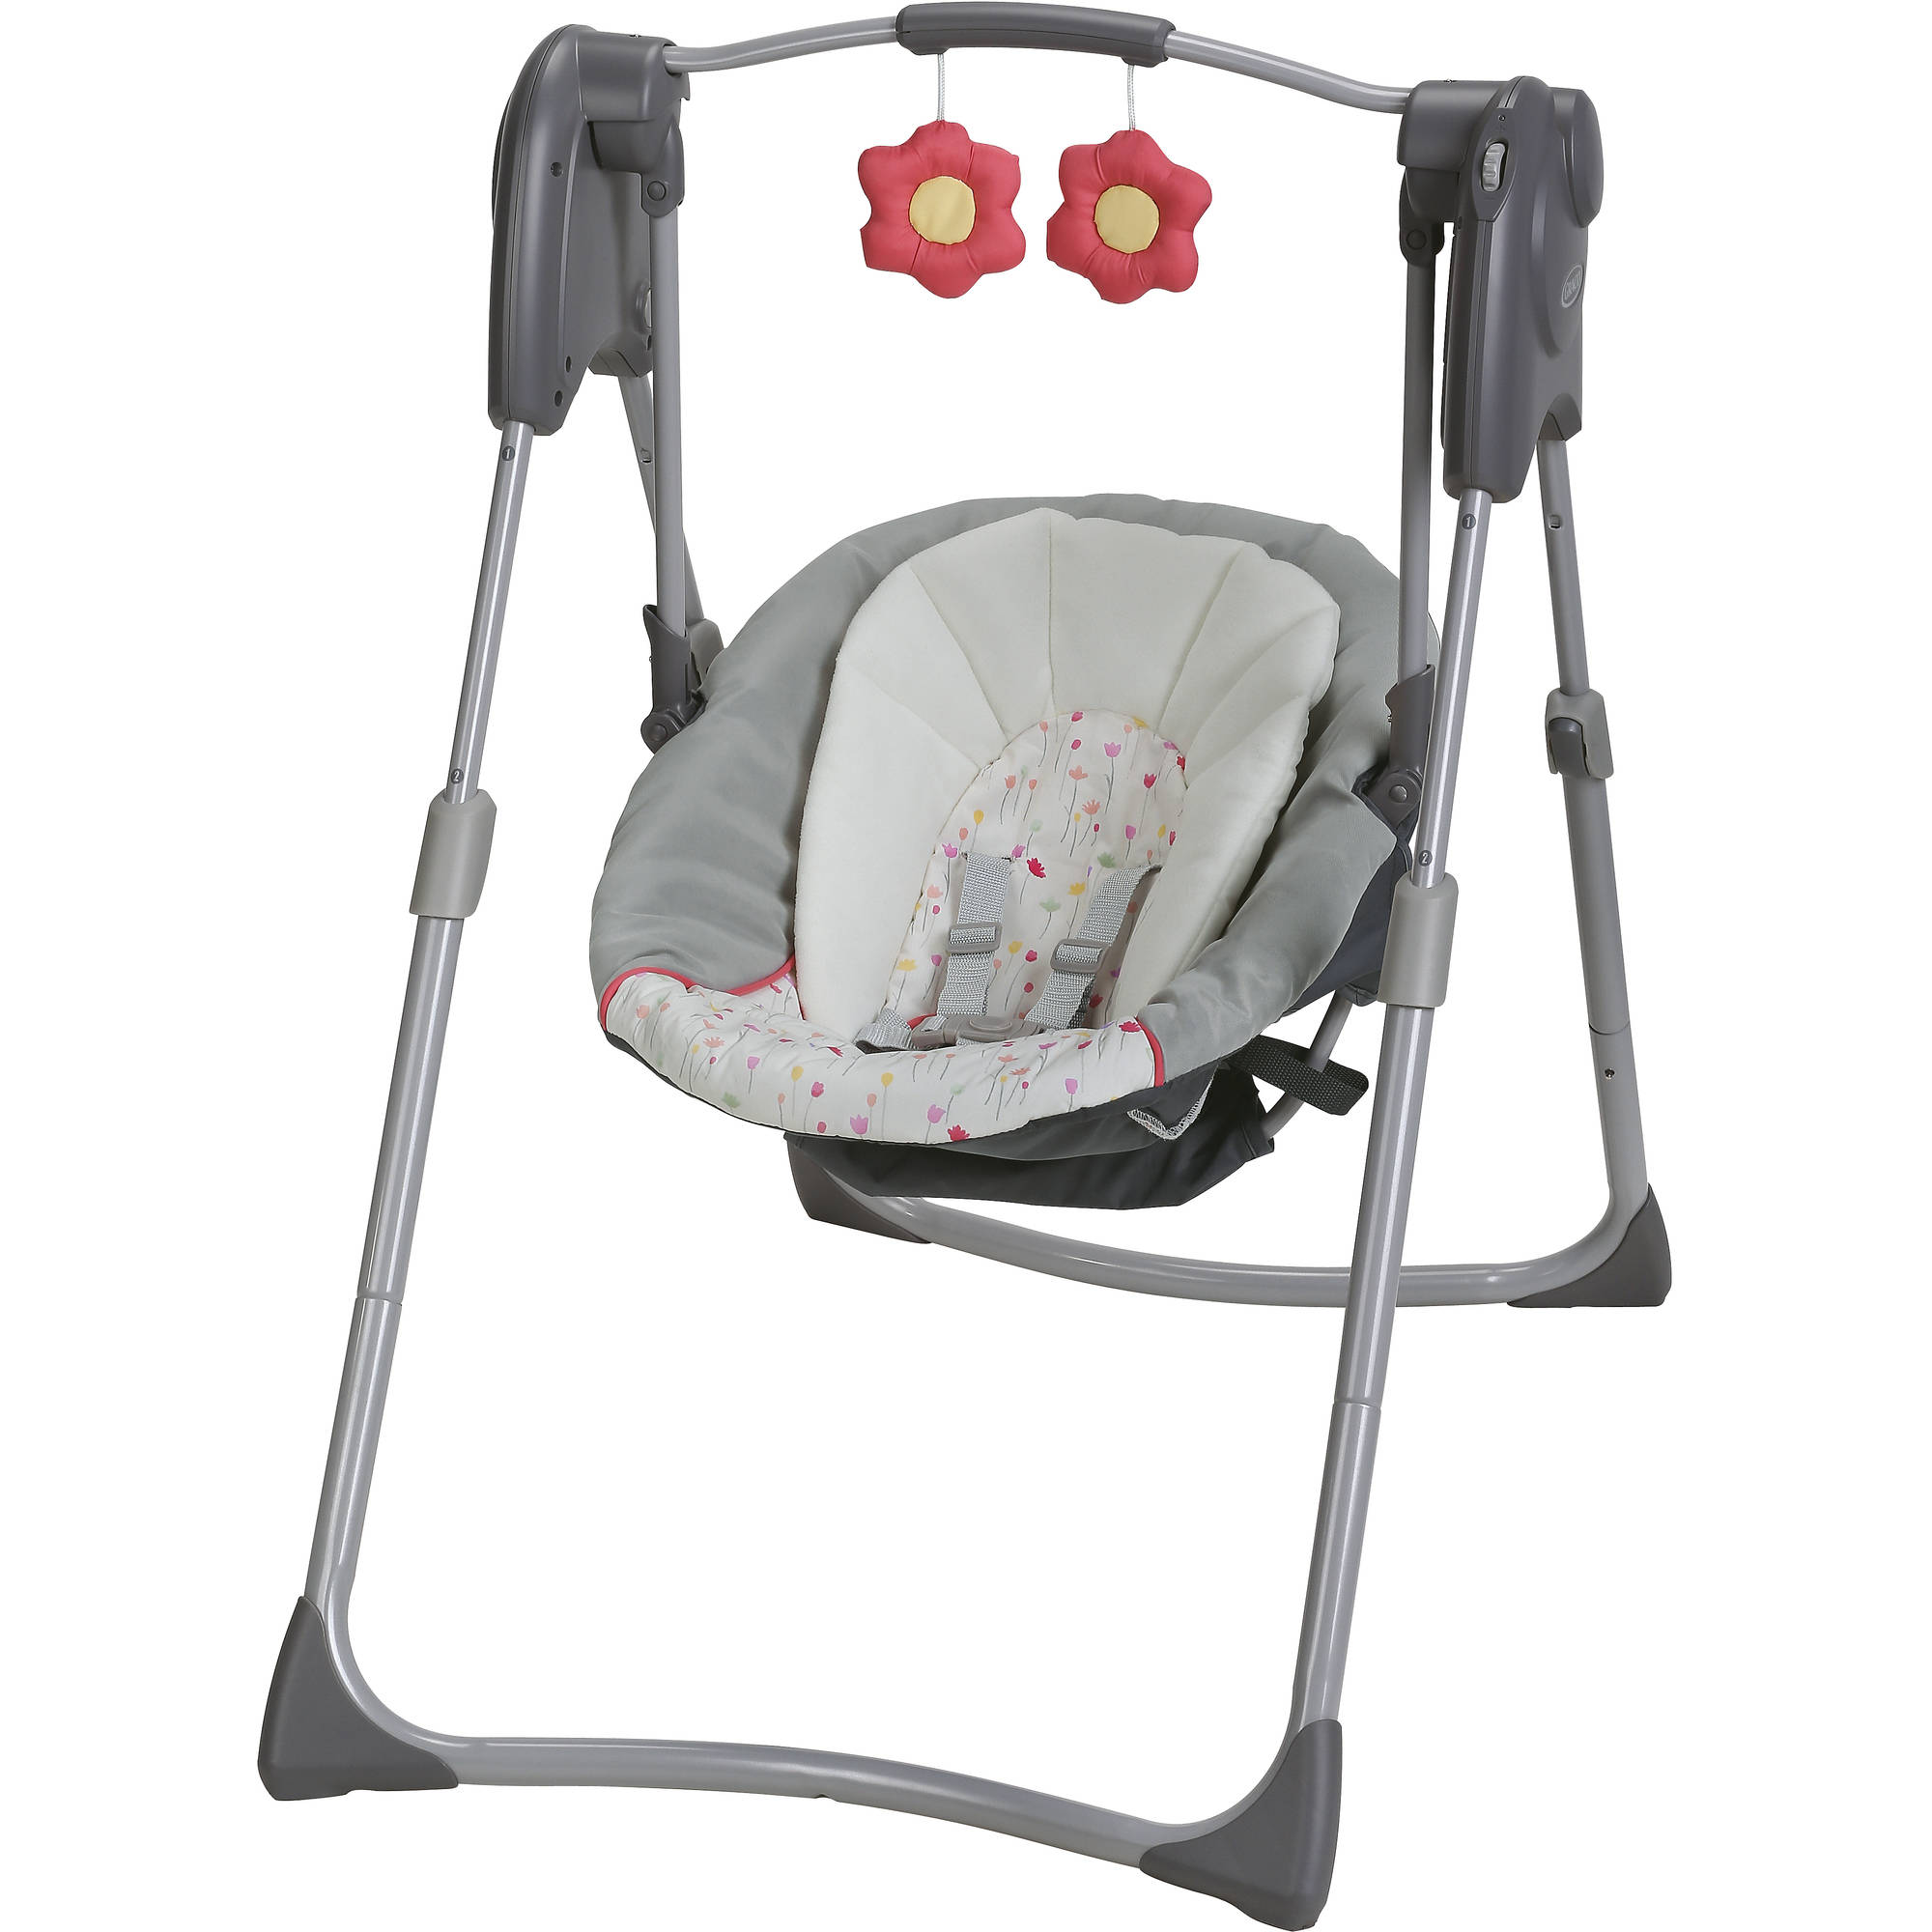 Graco Slim Spaces Compact Baby Swing, Alma